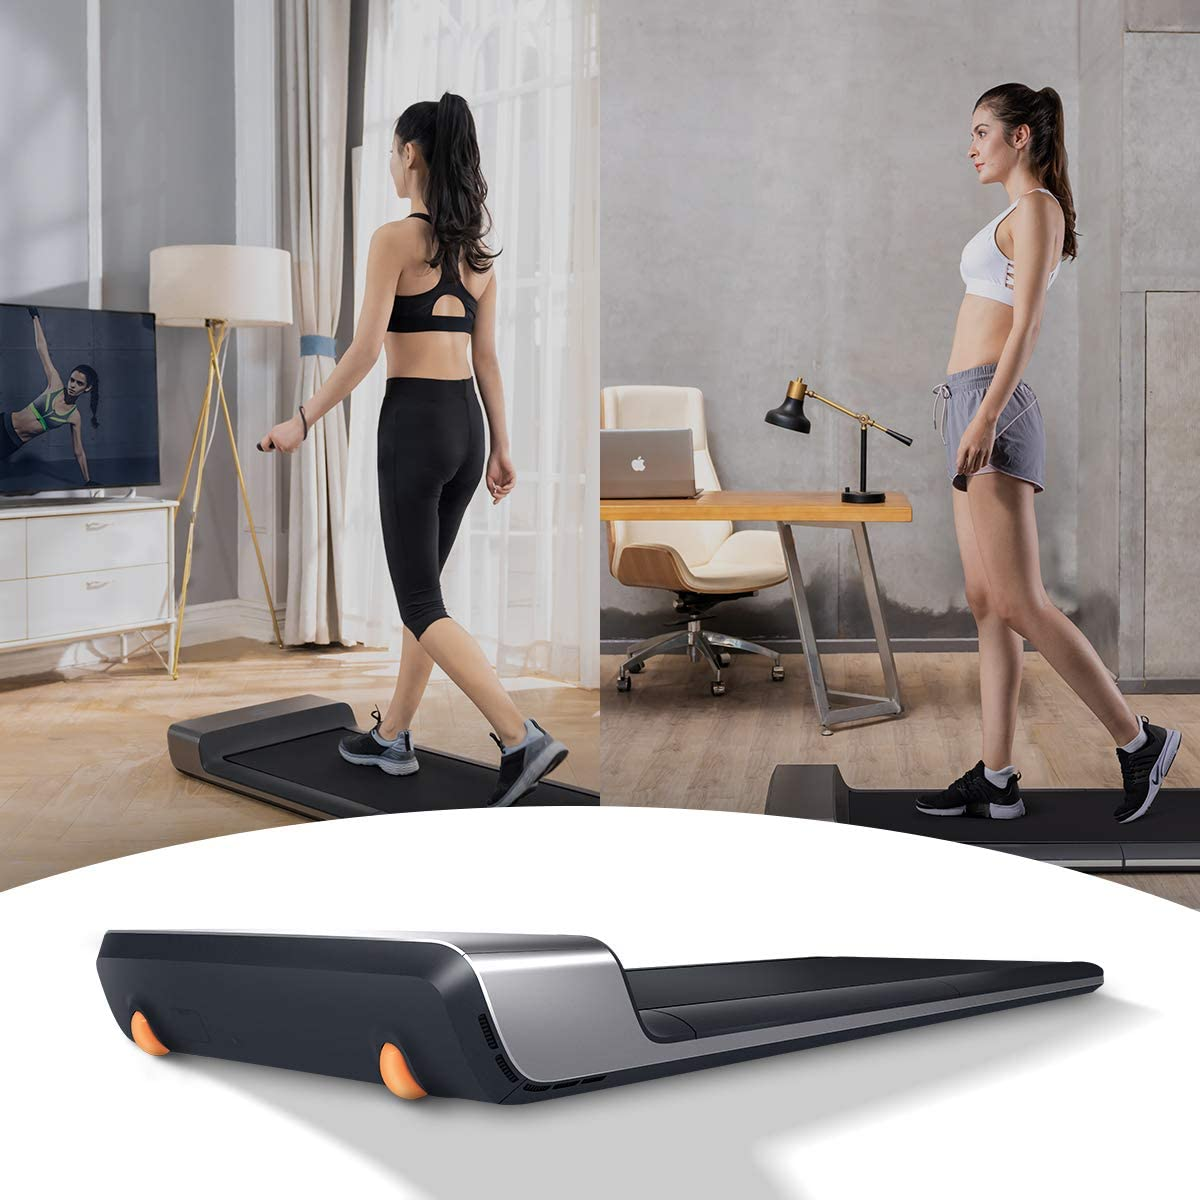 Walking Pad Kingsmith WalkingPad A1 foldable under desk walking treadmill Under Desk Treadmill